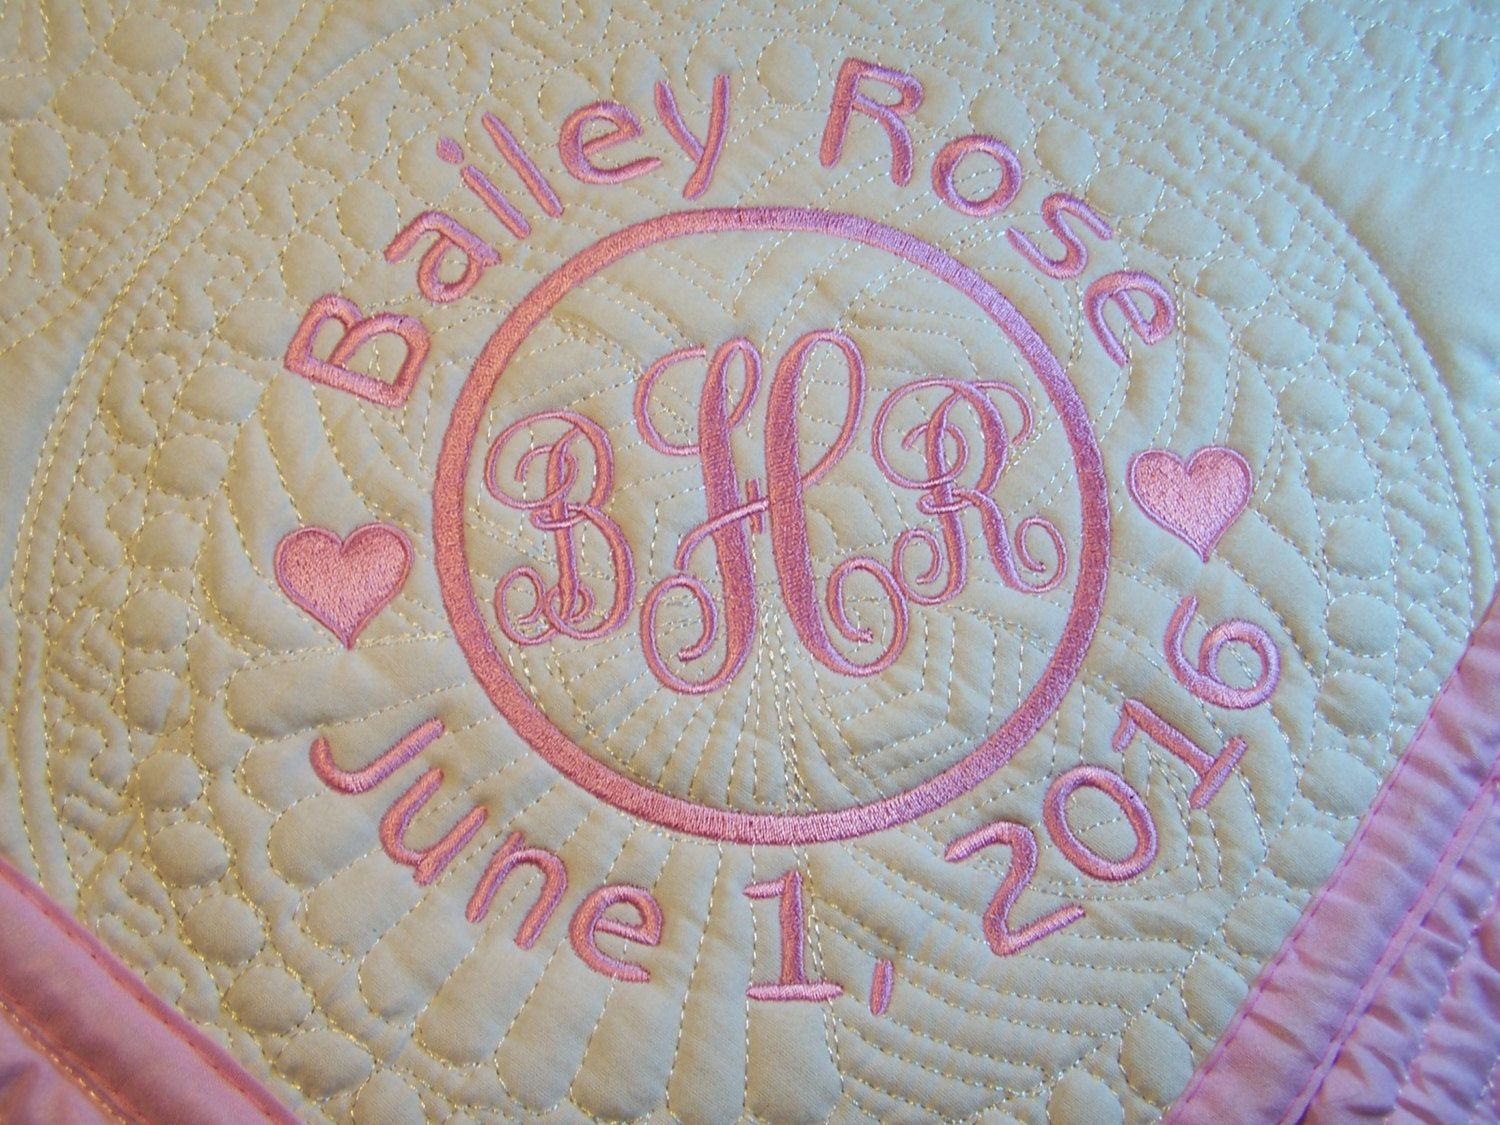 Personalized quilt baby blanket monogrammed baby gift crib personalized baby quilt quilt baby quilt personalized quilt monogrammed quilt baby blanket quilted crib blanket baby gift throws negle Image collections